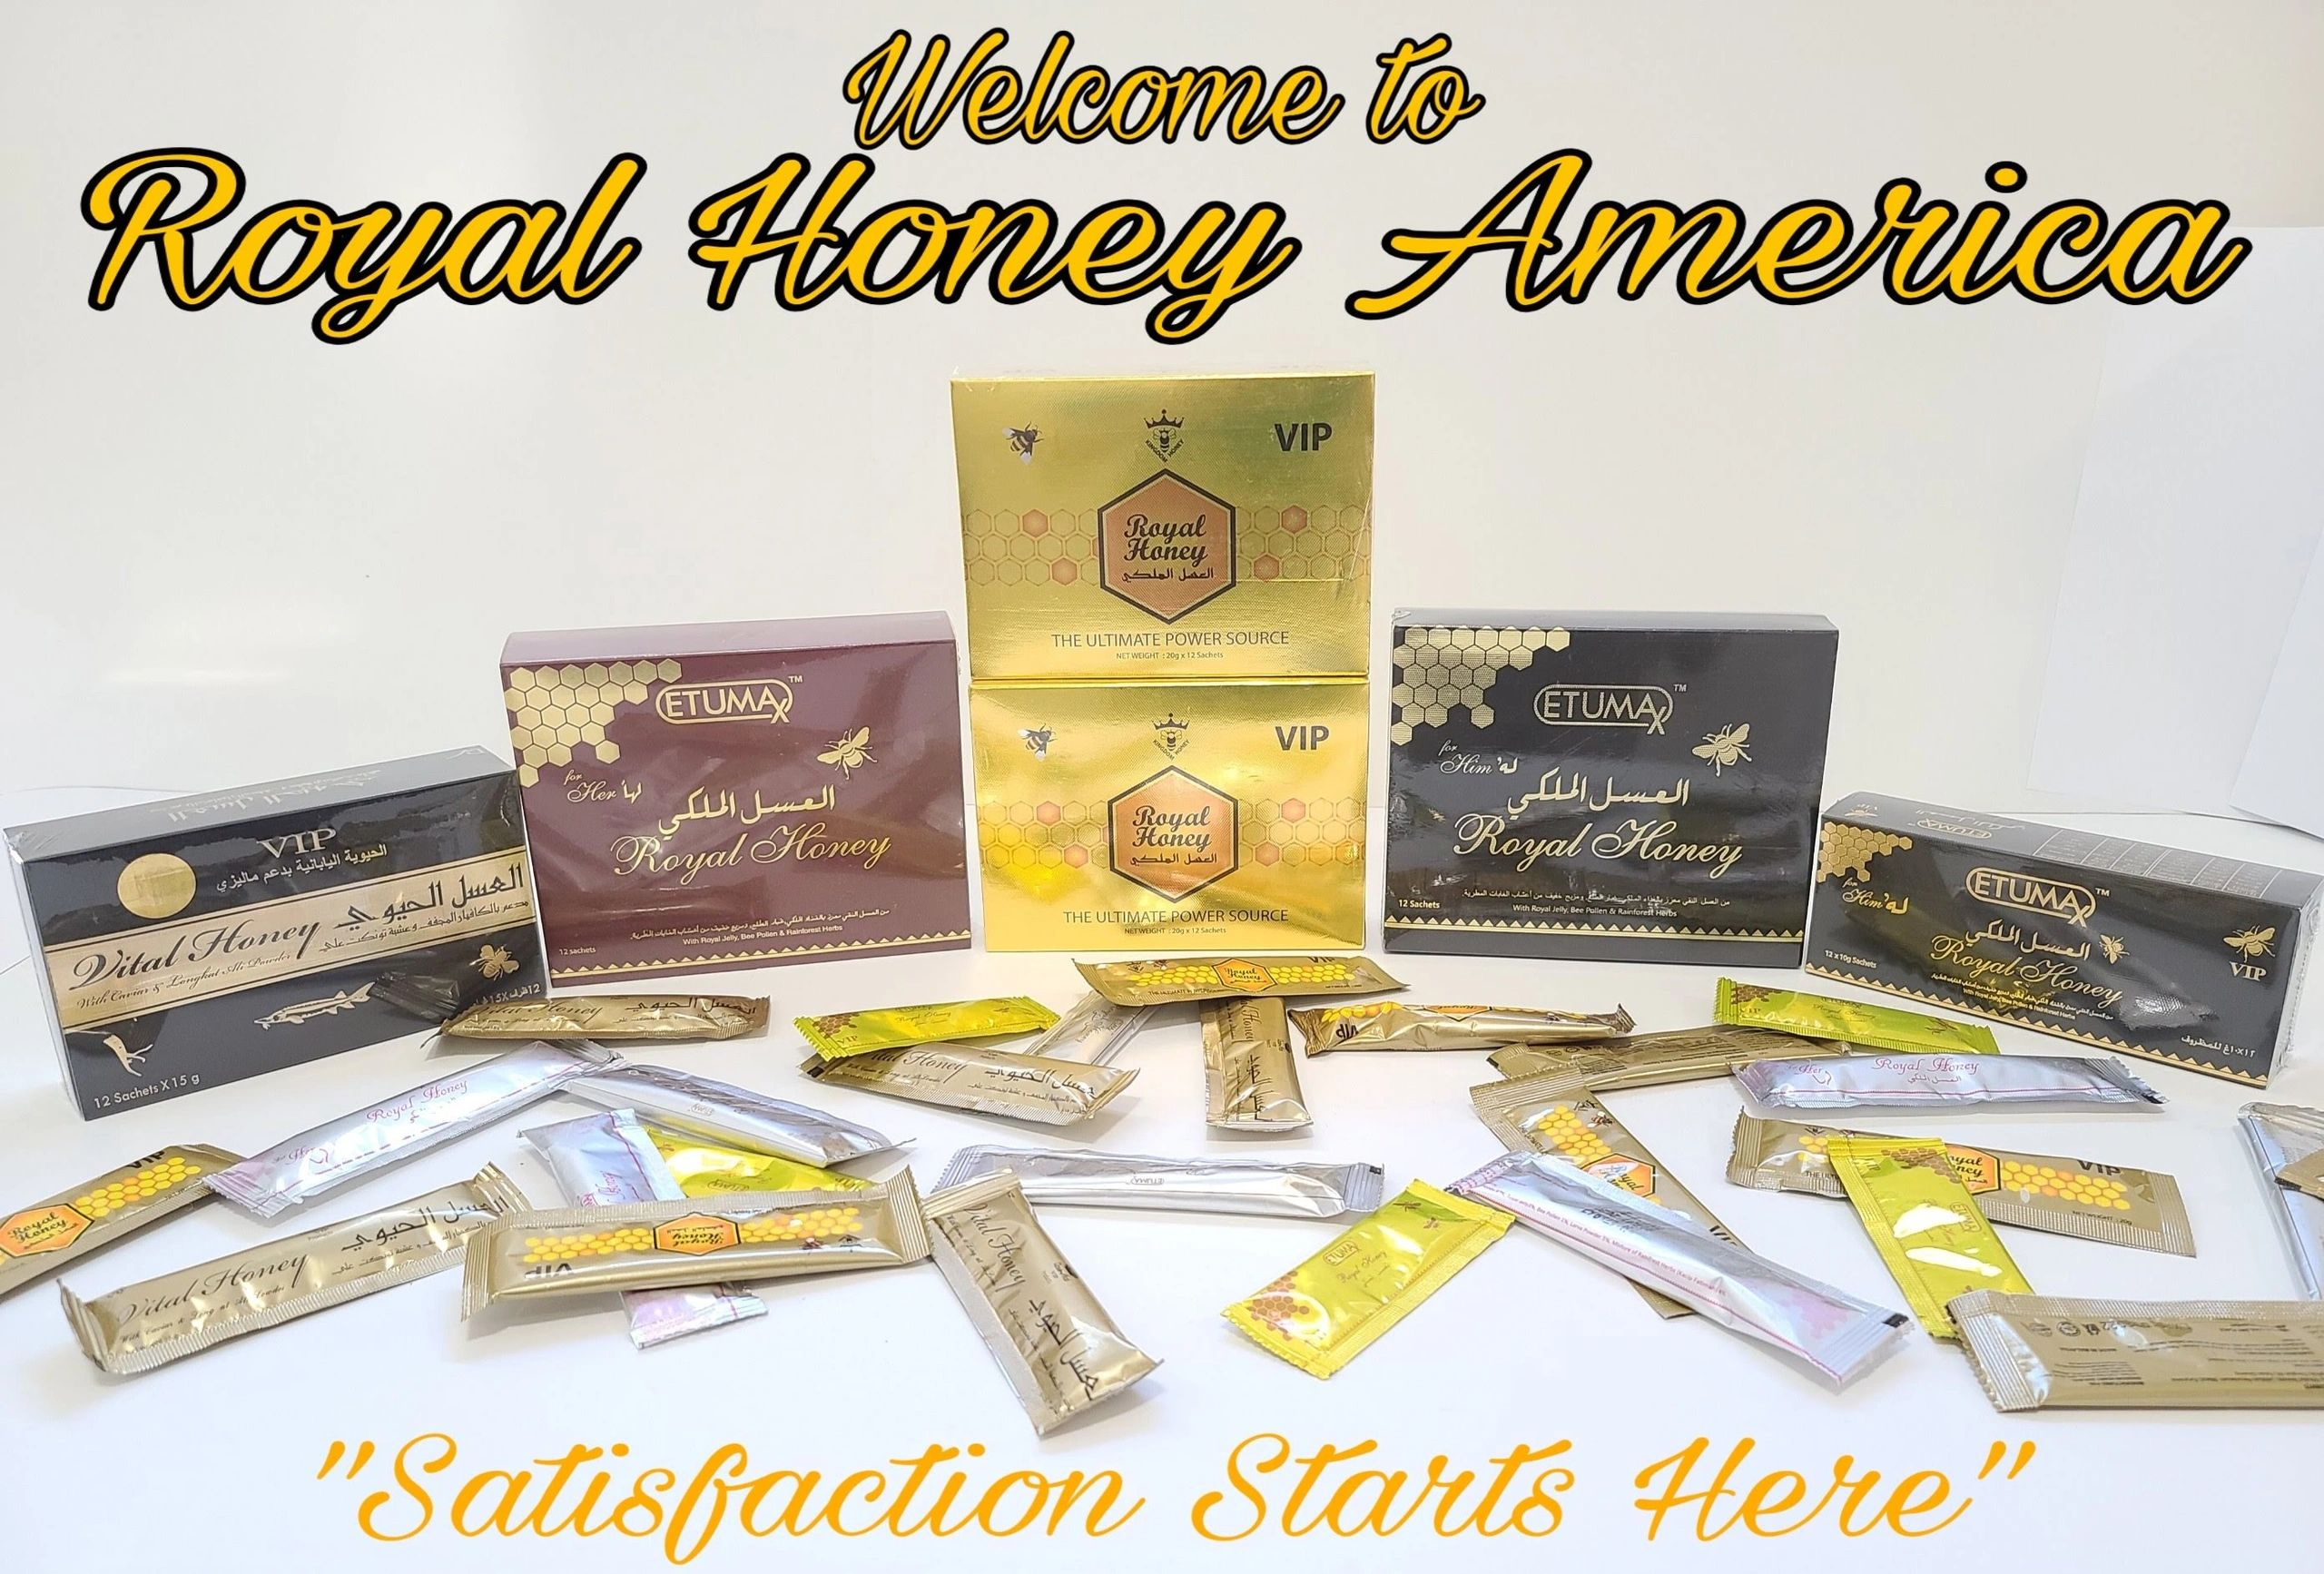 Royal Honey America - Royal Honey VIP Etumax Dose Vital Royal Honey